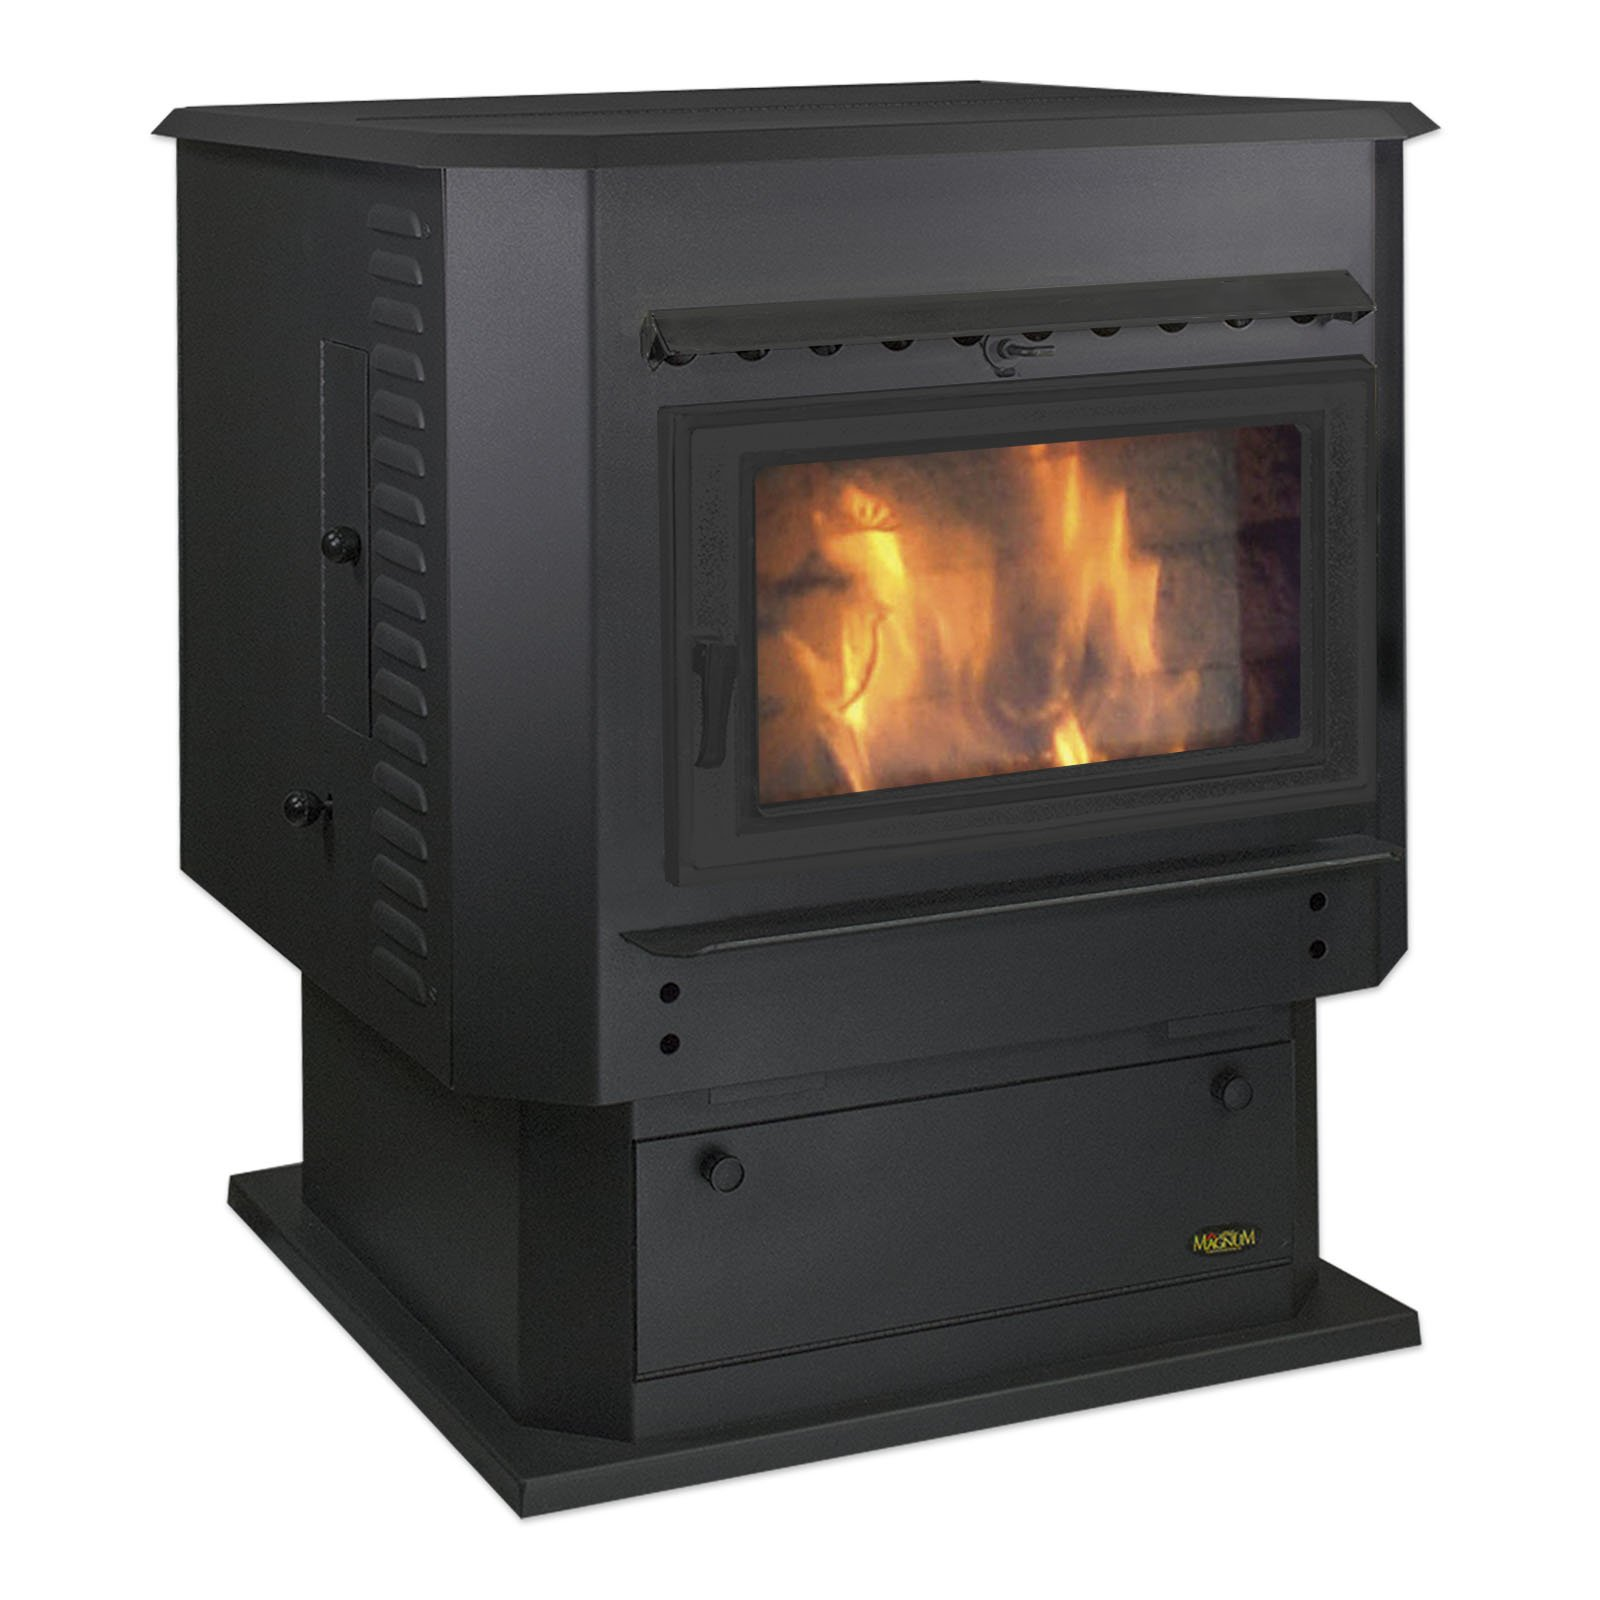 Classic Black MagnuM Grand Countryside Wood Pellet Stove 56,000 BTU Hand Built in USA